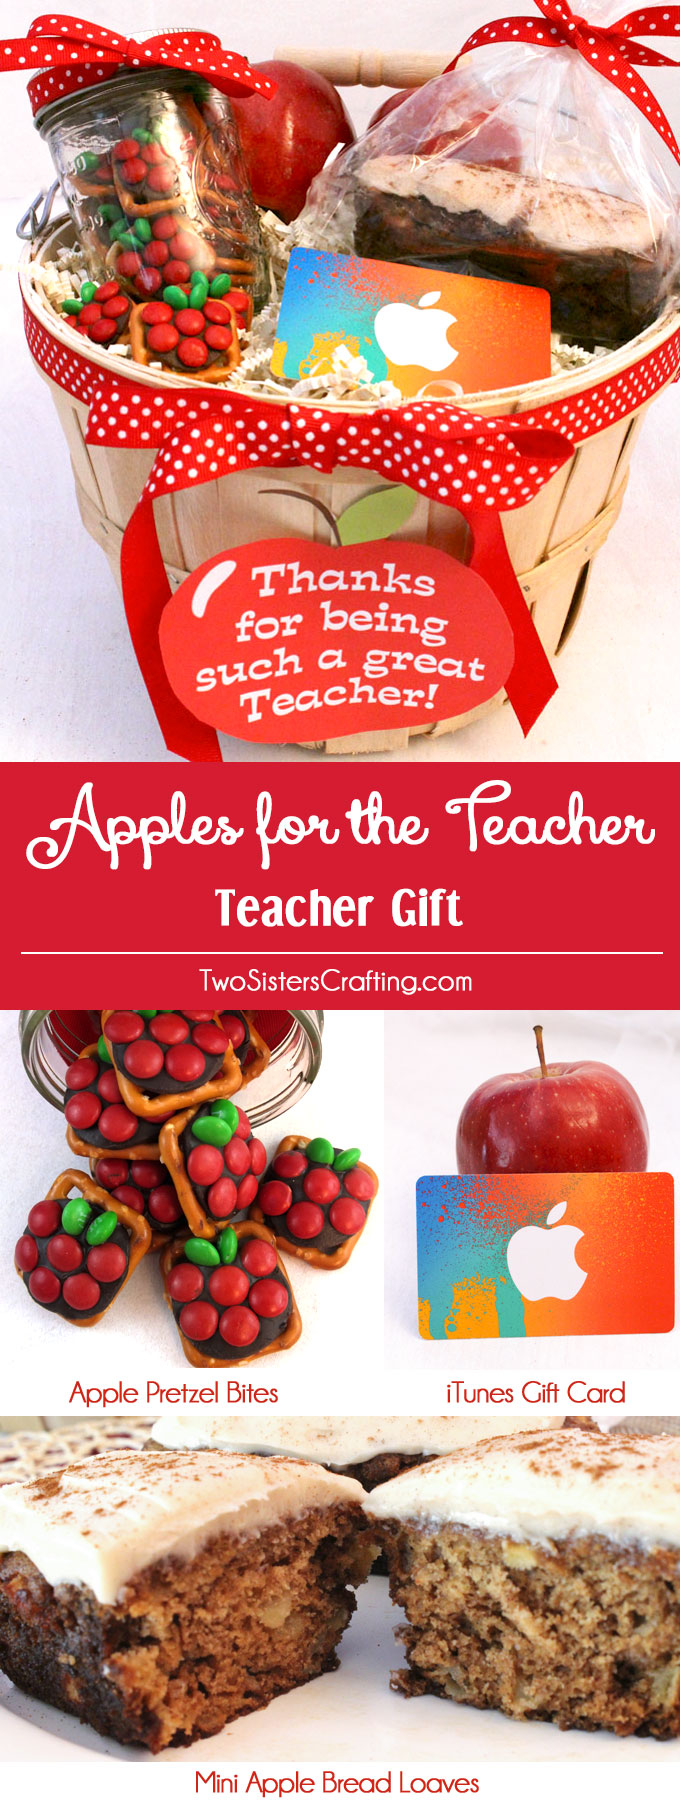 If you are looking for a very easy to make DIY Teacher Appreciation Gift try our Apples for the Teacher Gift Basket - chock full with apple themed treats that your child's teacher will love including delicious sweet and salty Apple Pretzel Bites, yummy Mini Apple Bread and a sure to be appreciated Apple iTunes Gift Card. We have all the directions you'll need to put together this fun Teacher Gift. Follow us for more fun DIY Gift ideas.